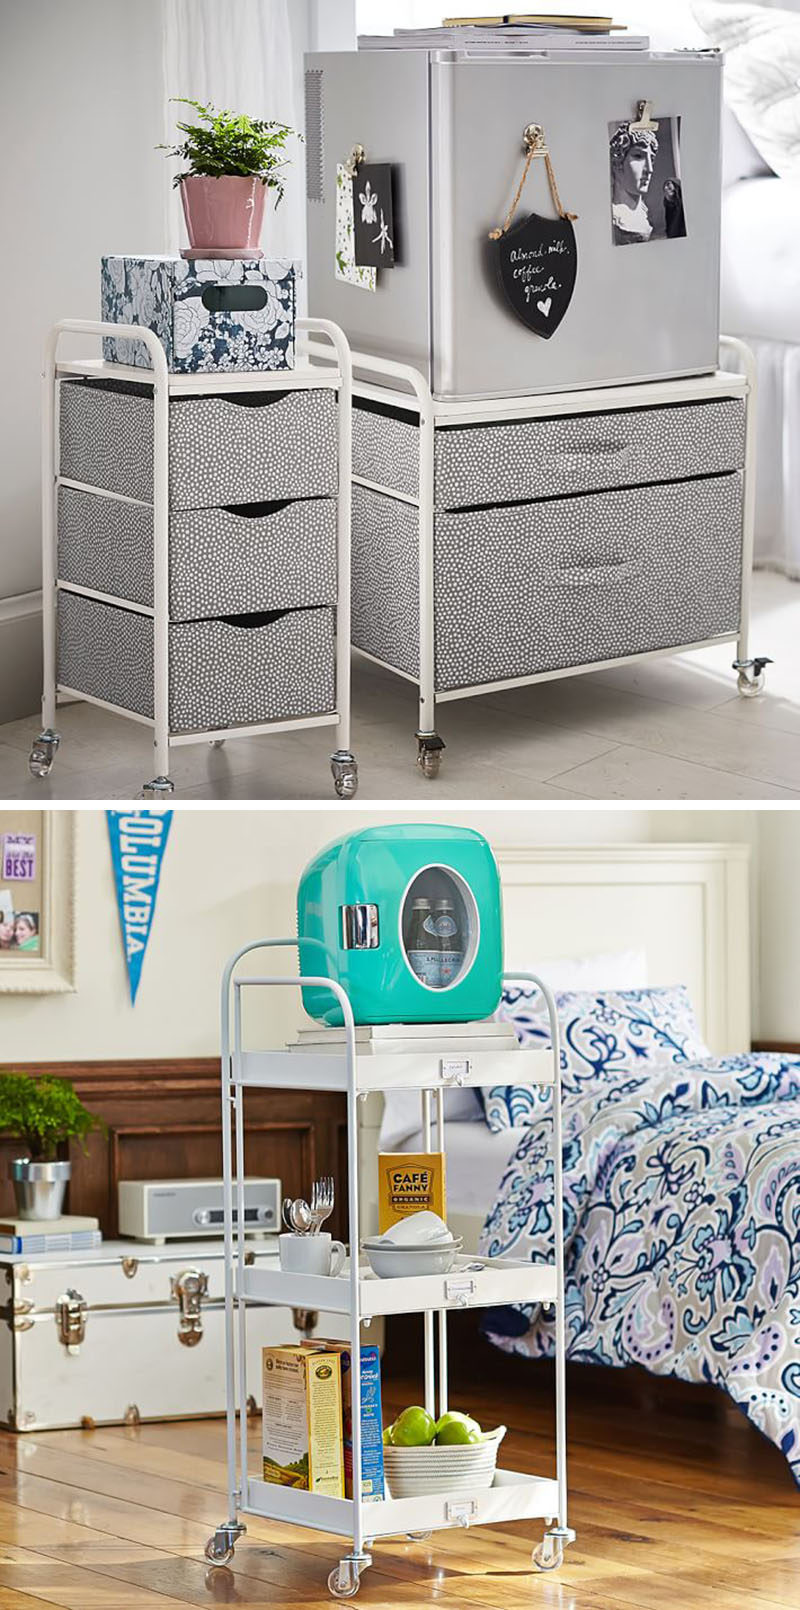 DORM ROOM Design Ideas And Must-Have Essentials // A mini fridge is a must for all those veggies, water bottles and milk you'll want to keep cool...especially if cereal is a must-have.